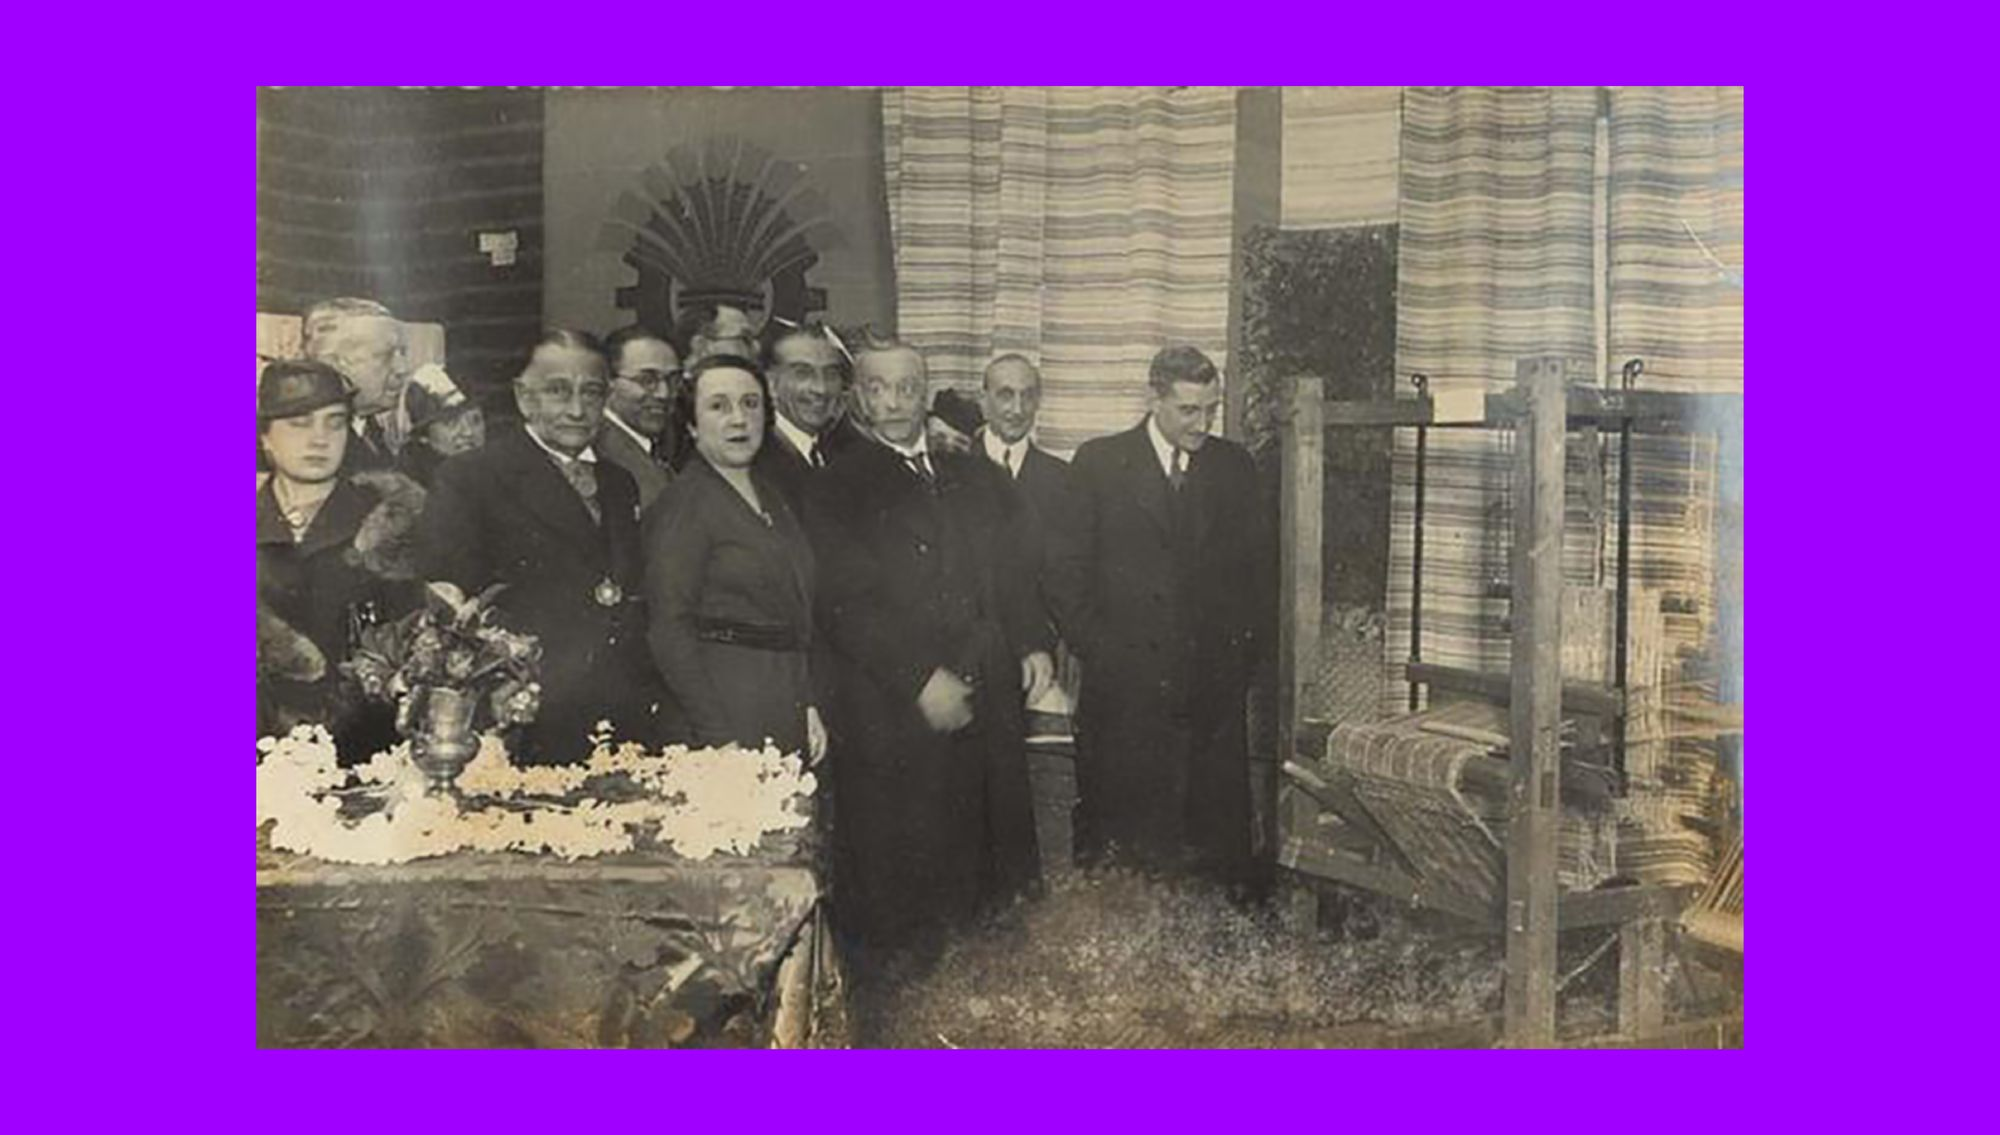 Maria Lamas in 1930 in the opening of the exhibition Women's Work. President Óscar Carmona (third from the right) and Salazar (first from the right) attended the opening.